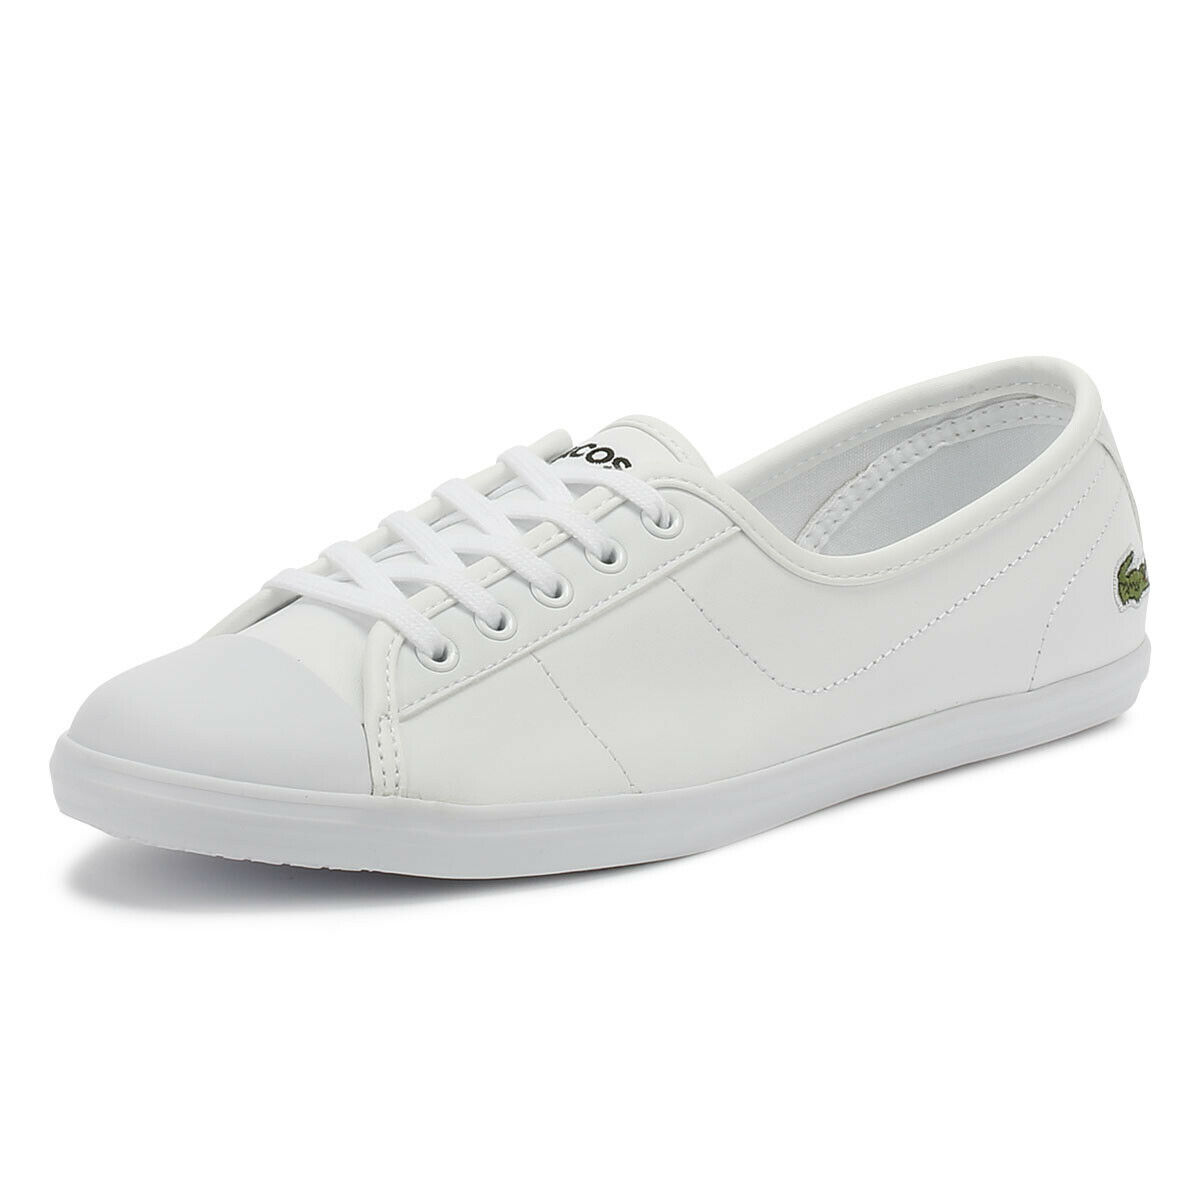 Lacoste Ziane BL 1 CFA White Trainers Sport Casual shoes Ladies Flats